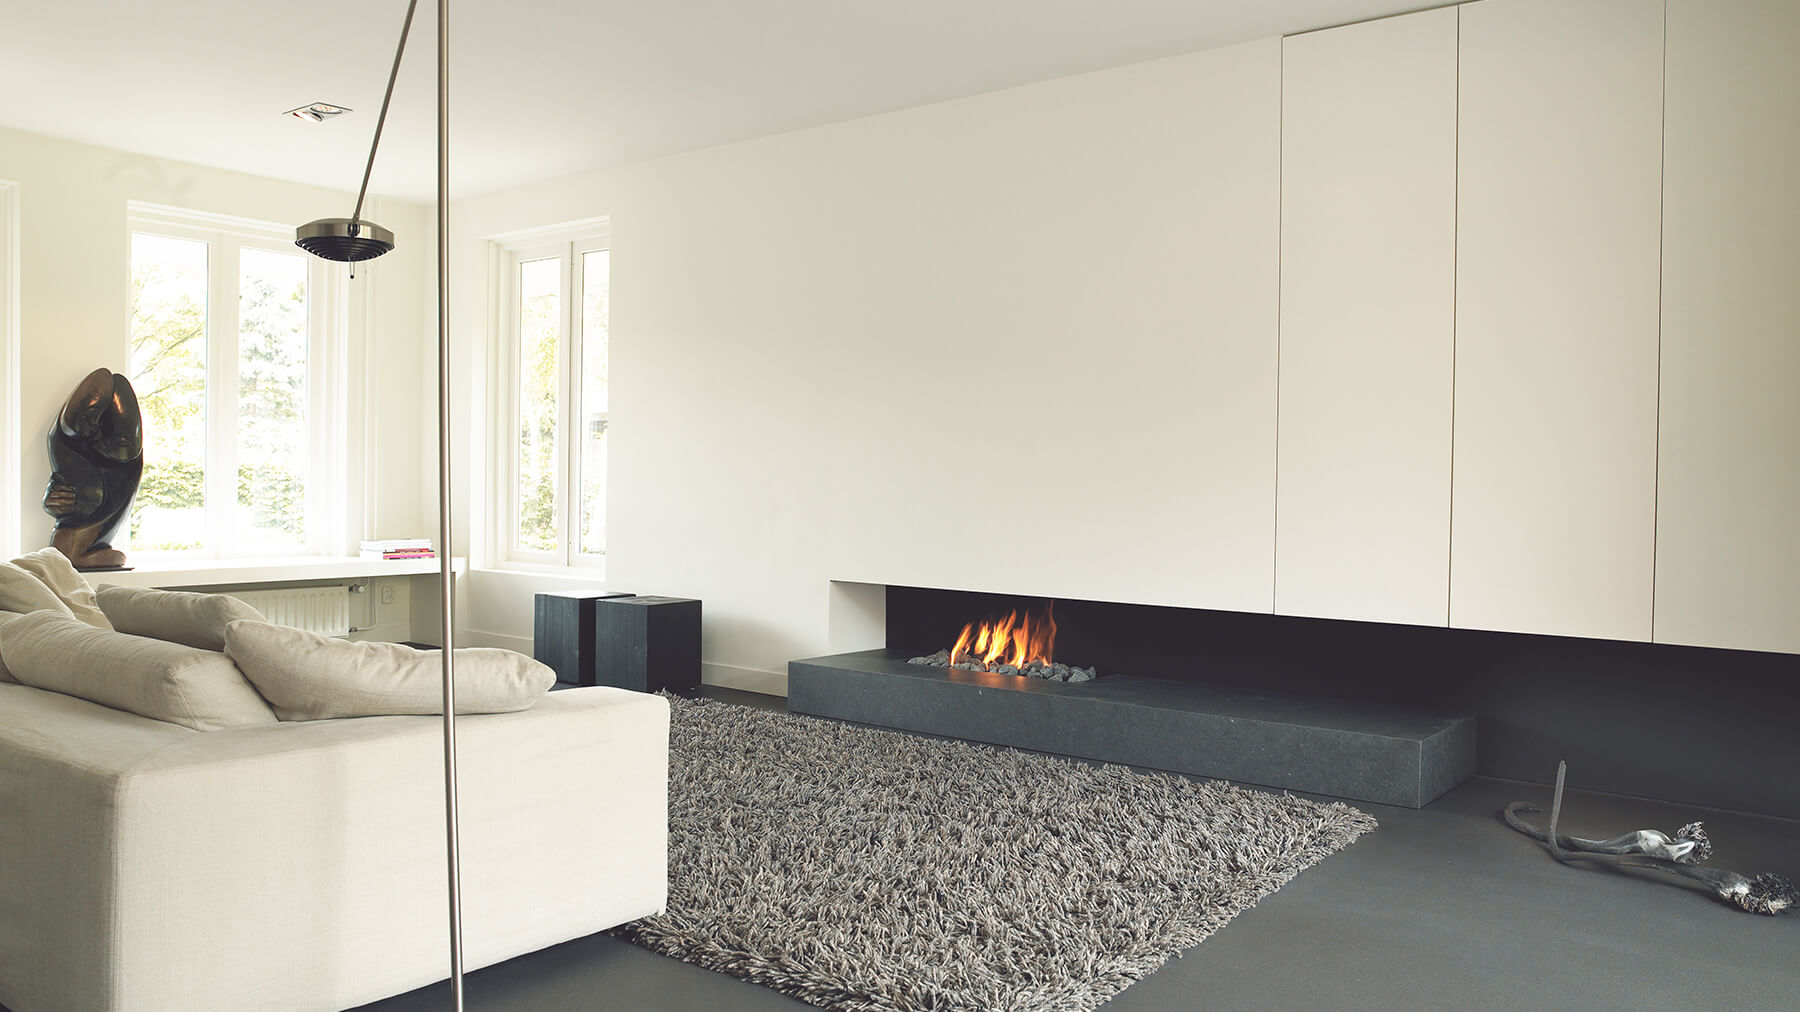 designer central cheminee design fireplace gyrofocus fireplaces centrale focus